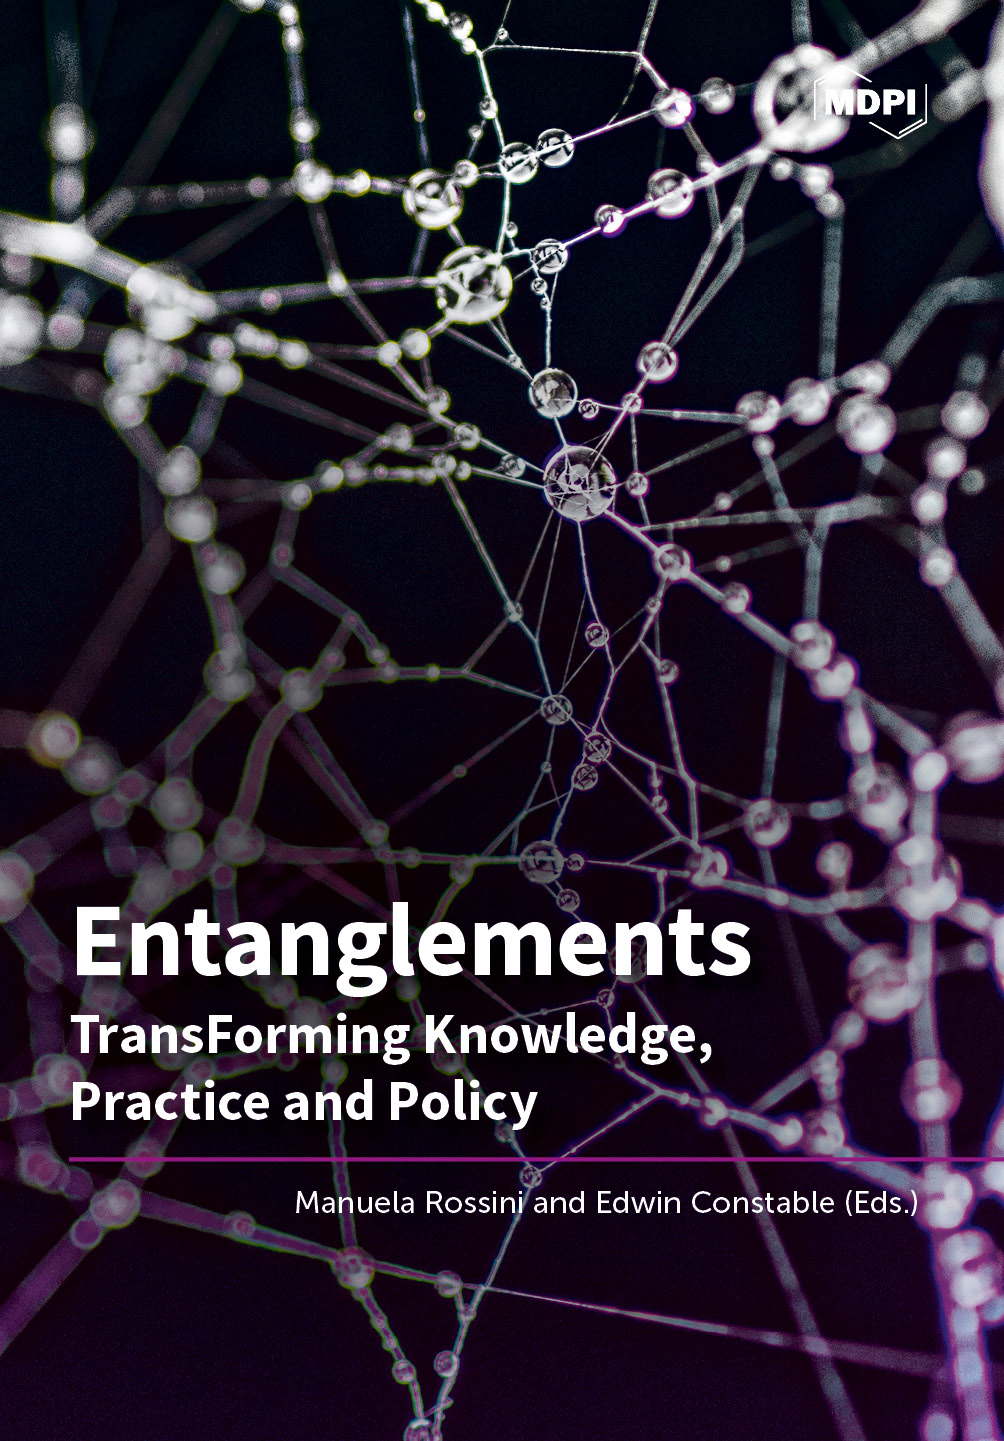 Entanglements. TransForming Knowledge, Practice and Policy